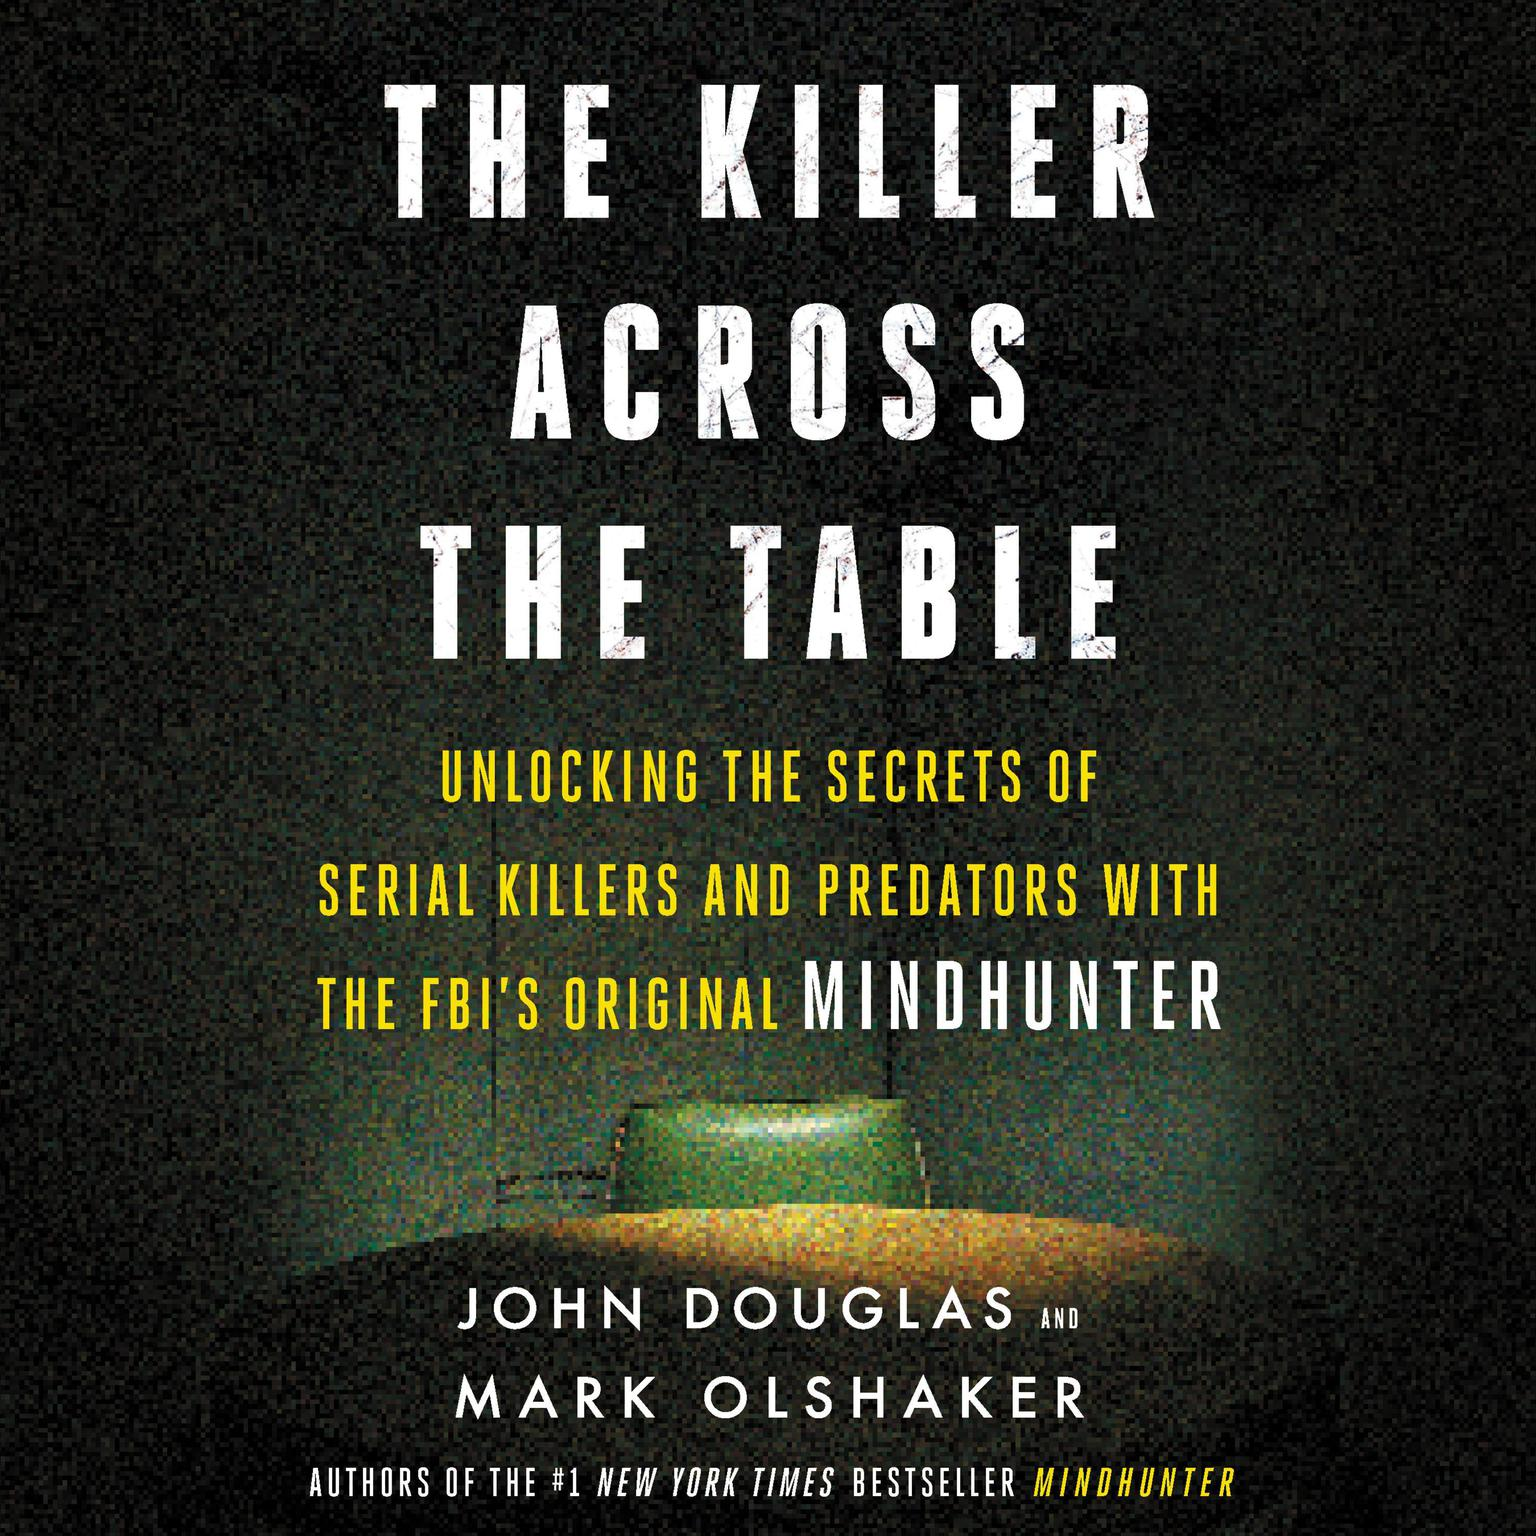 Printable The Killer Across the Table: Unlocking the Secrets of Serial Killers and Predators with the FBI's Original Mindhunter Audiobook Cover Art